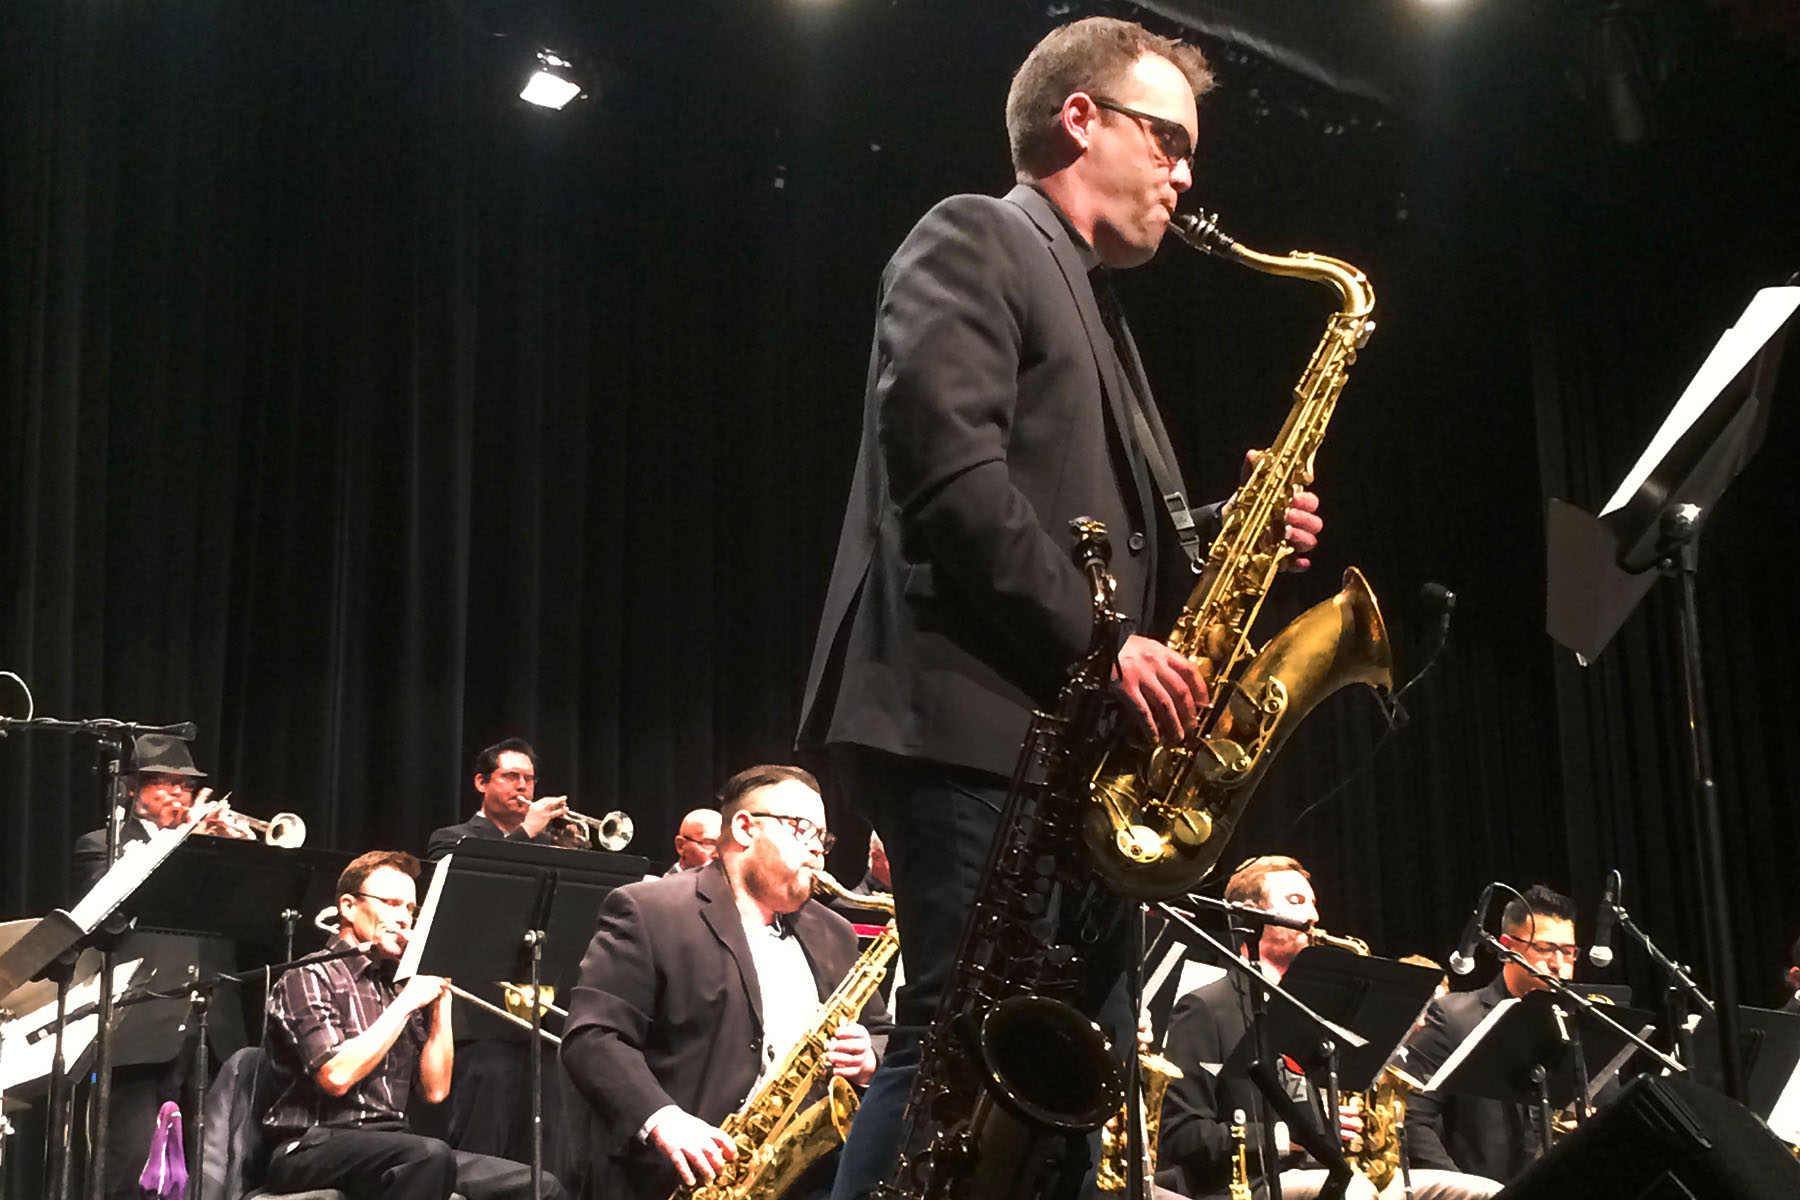 """Kevin Garren, grammy winning saxophonist and City College alumnus, performs the song """"Bopularity"""" by Matt Catingub during the Legends of Jazz concert on Friday, April 7, at the Garvin Theatre. Garren Played with all three City College Jazz Bands."""